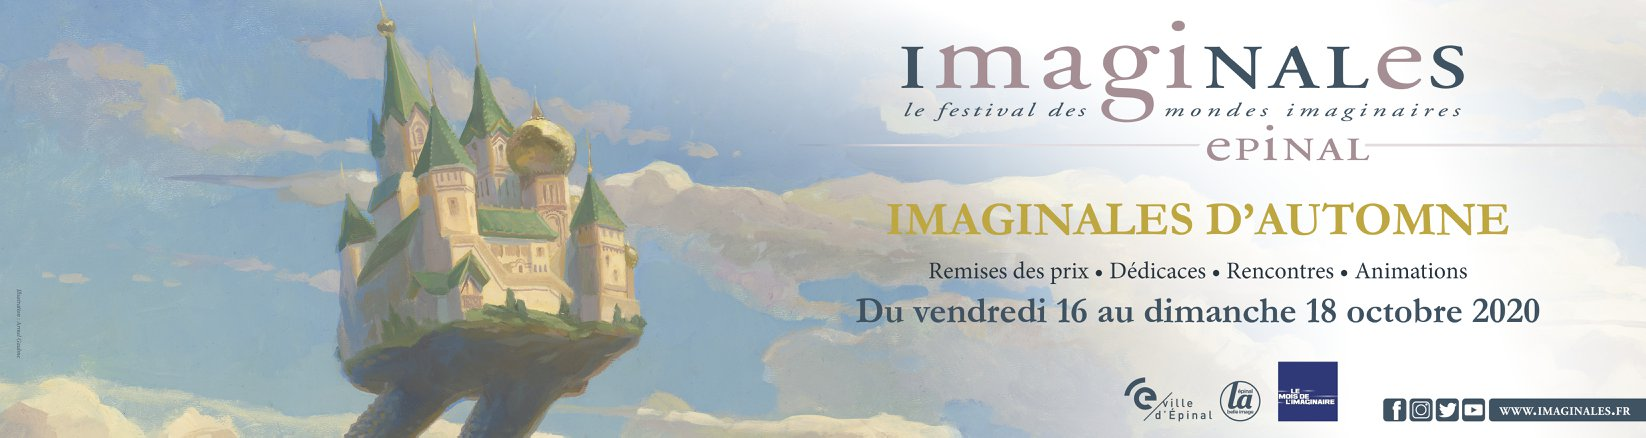 Colloque des Imaginales 2020 - Table Ronde : Game of Thrones : nouveau modèle ou inspiration ?